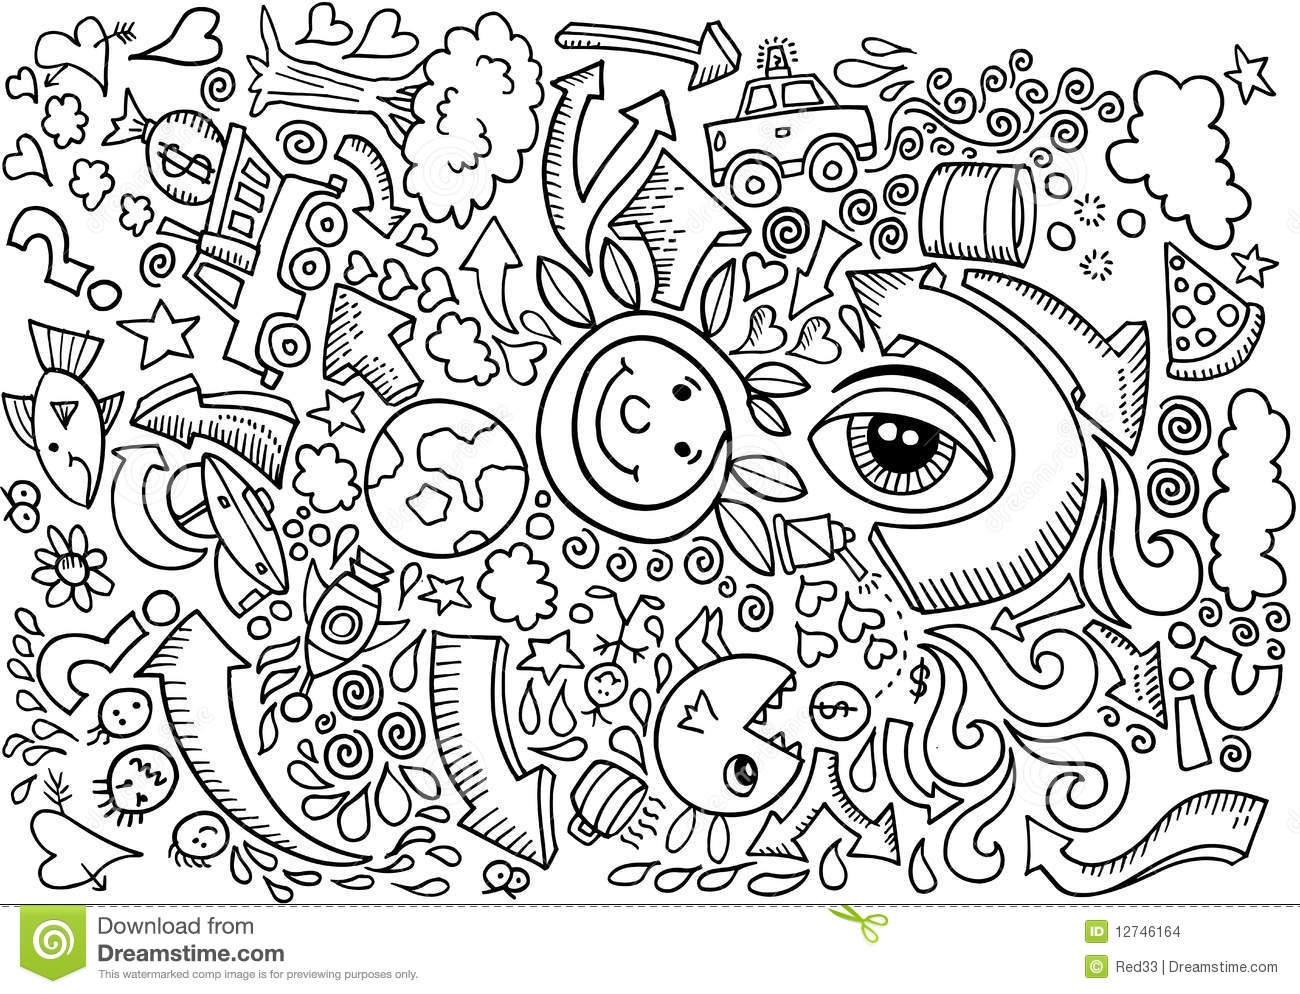 adult coloring pages with quotes - stock images doodle sketch drawing vector image